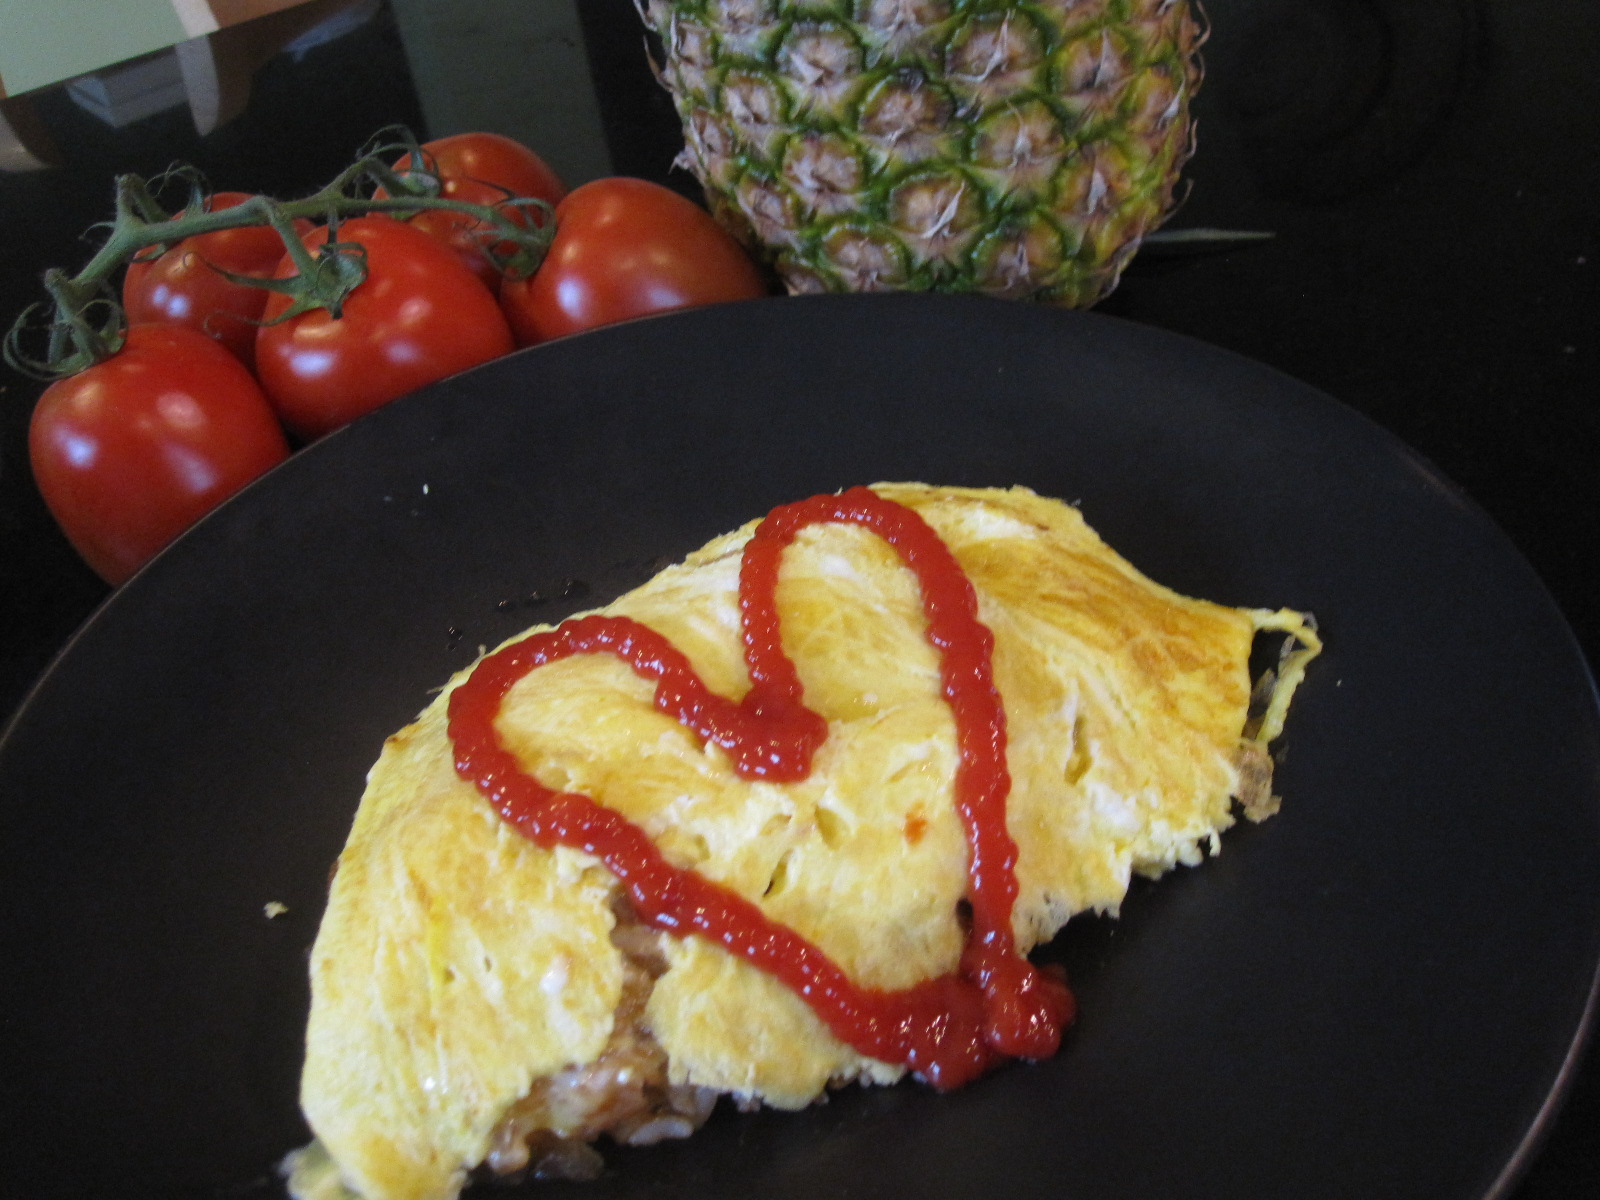 ... omurice restaurants in Japan that have many different kinds of omurice